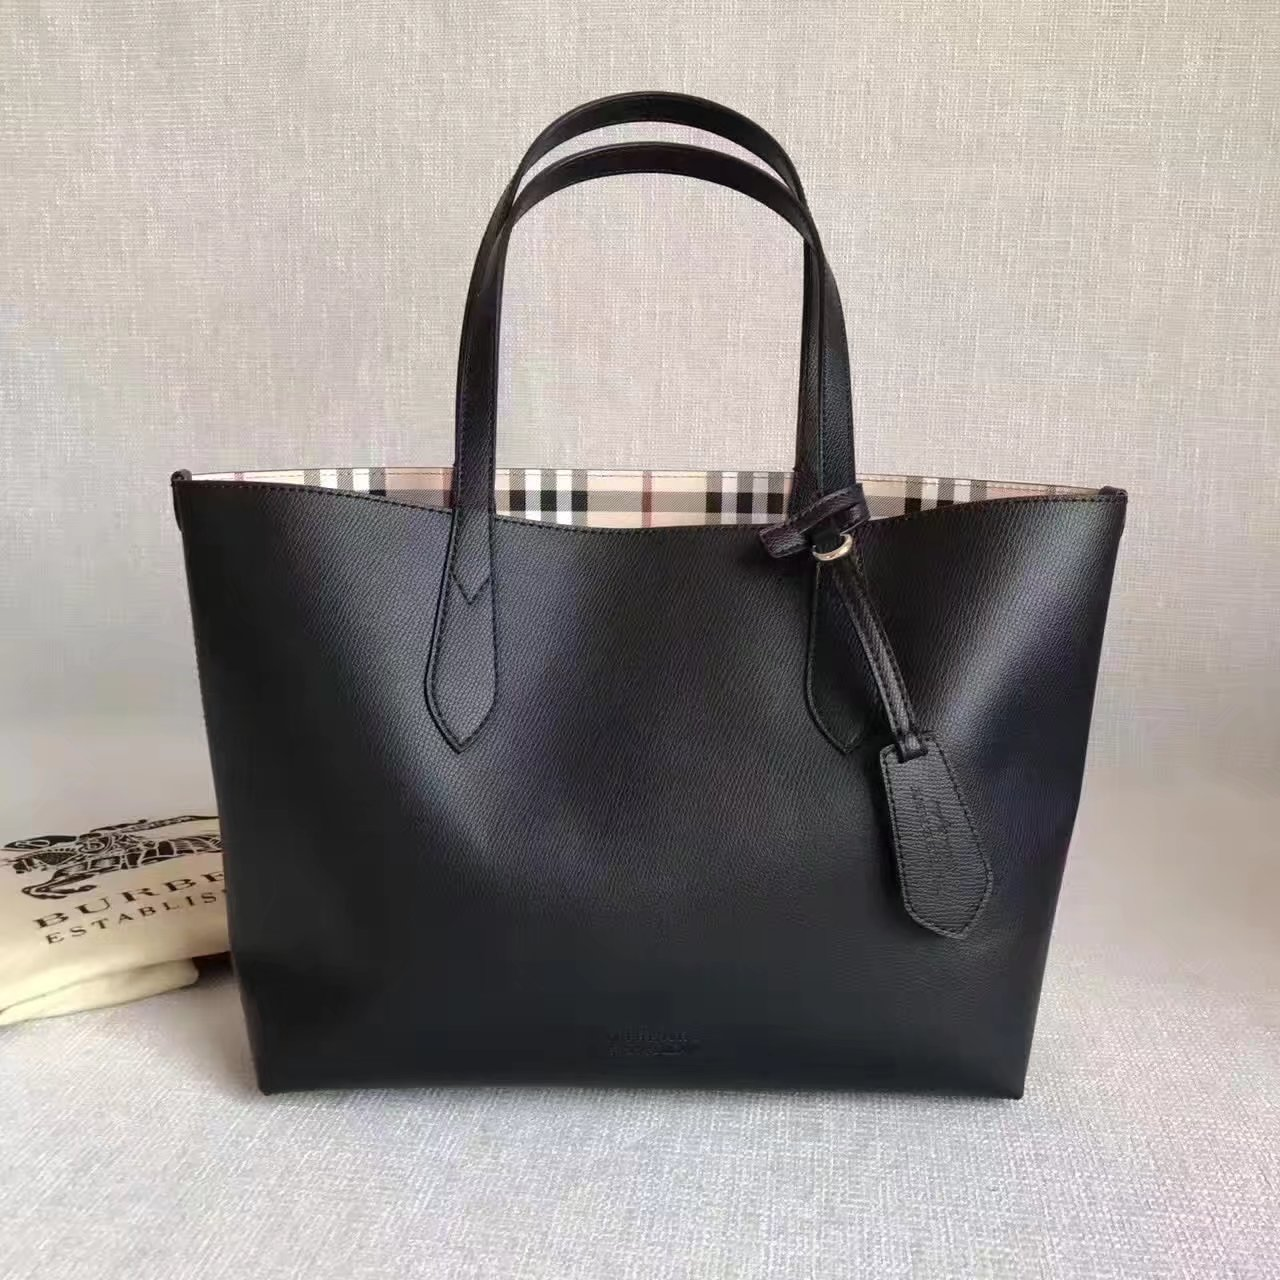 Burberry Medium Coated Leather Tote Bag Black